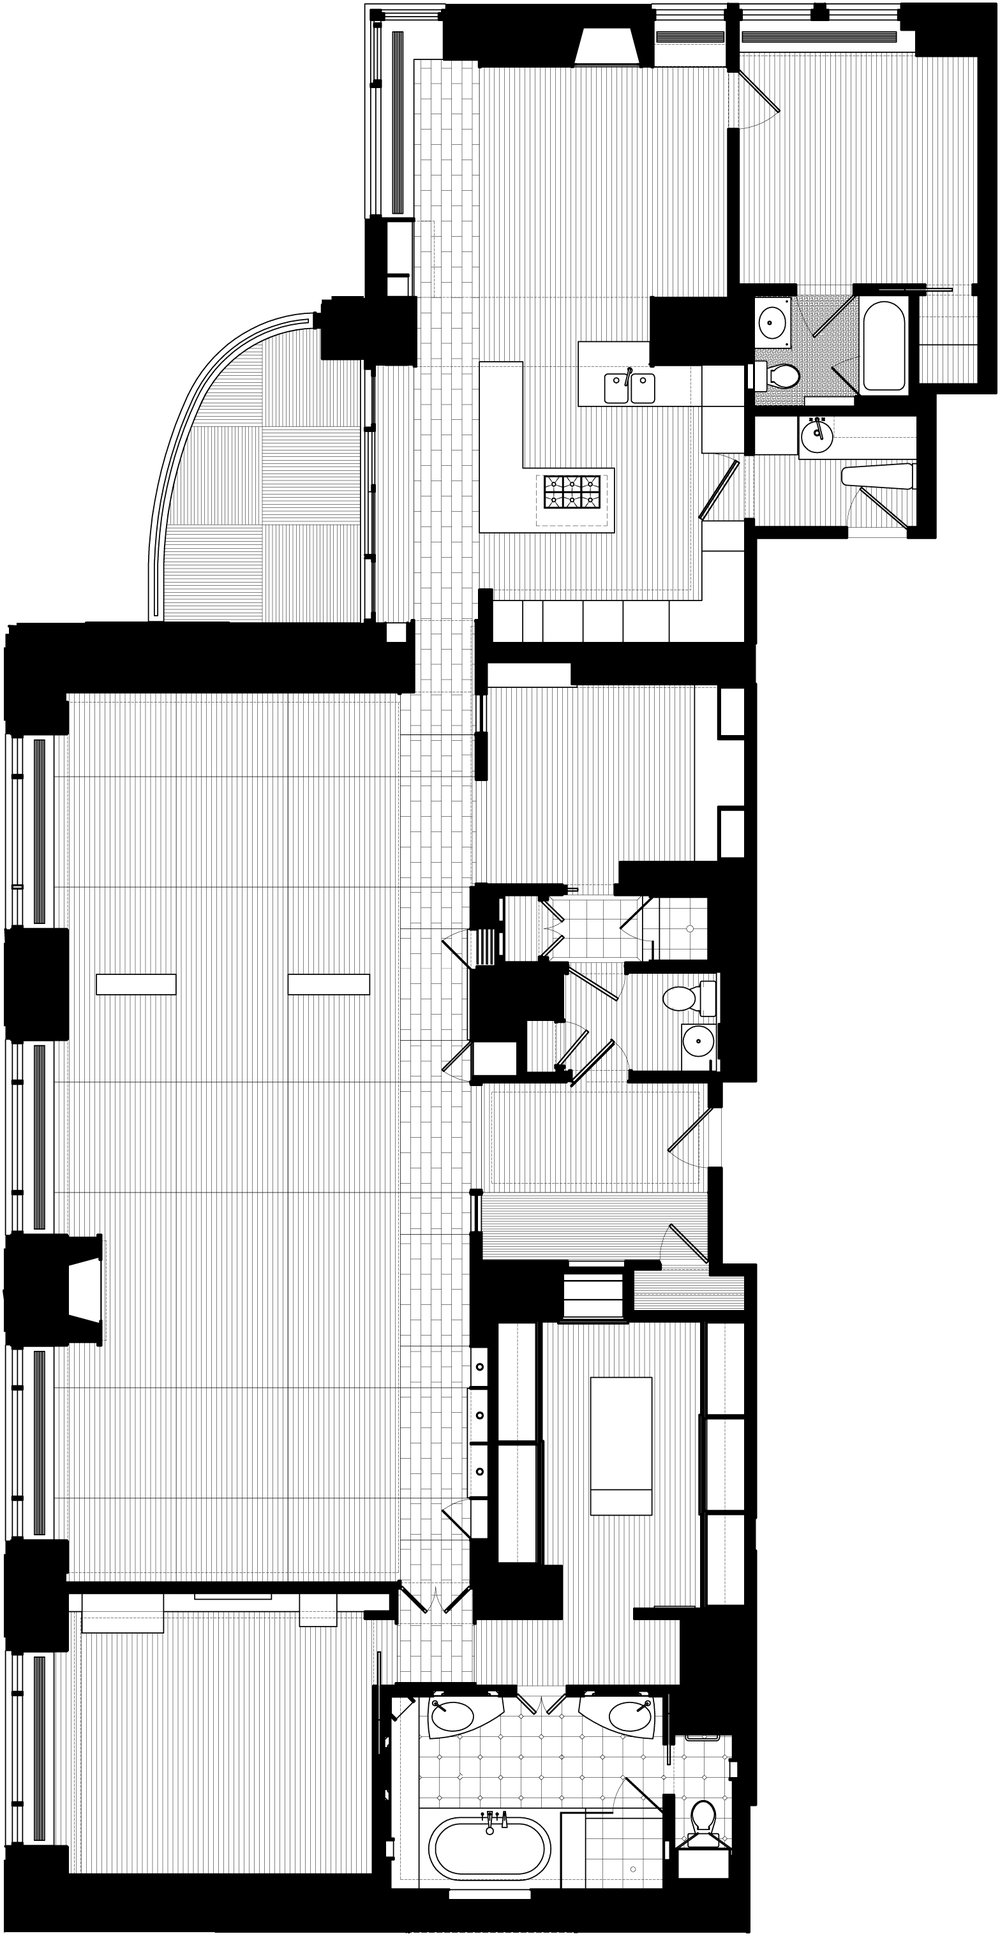 plan with flooring.jpg